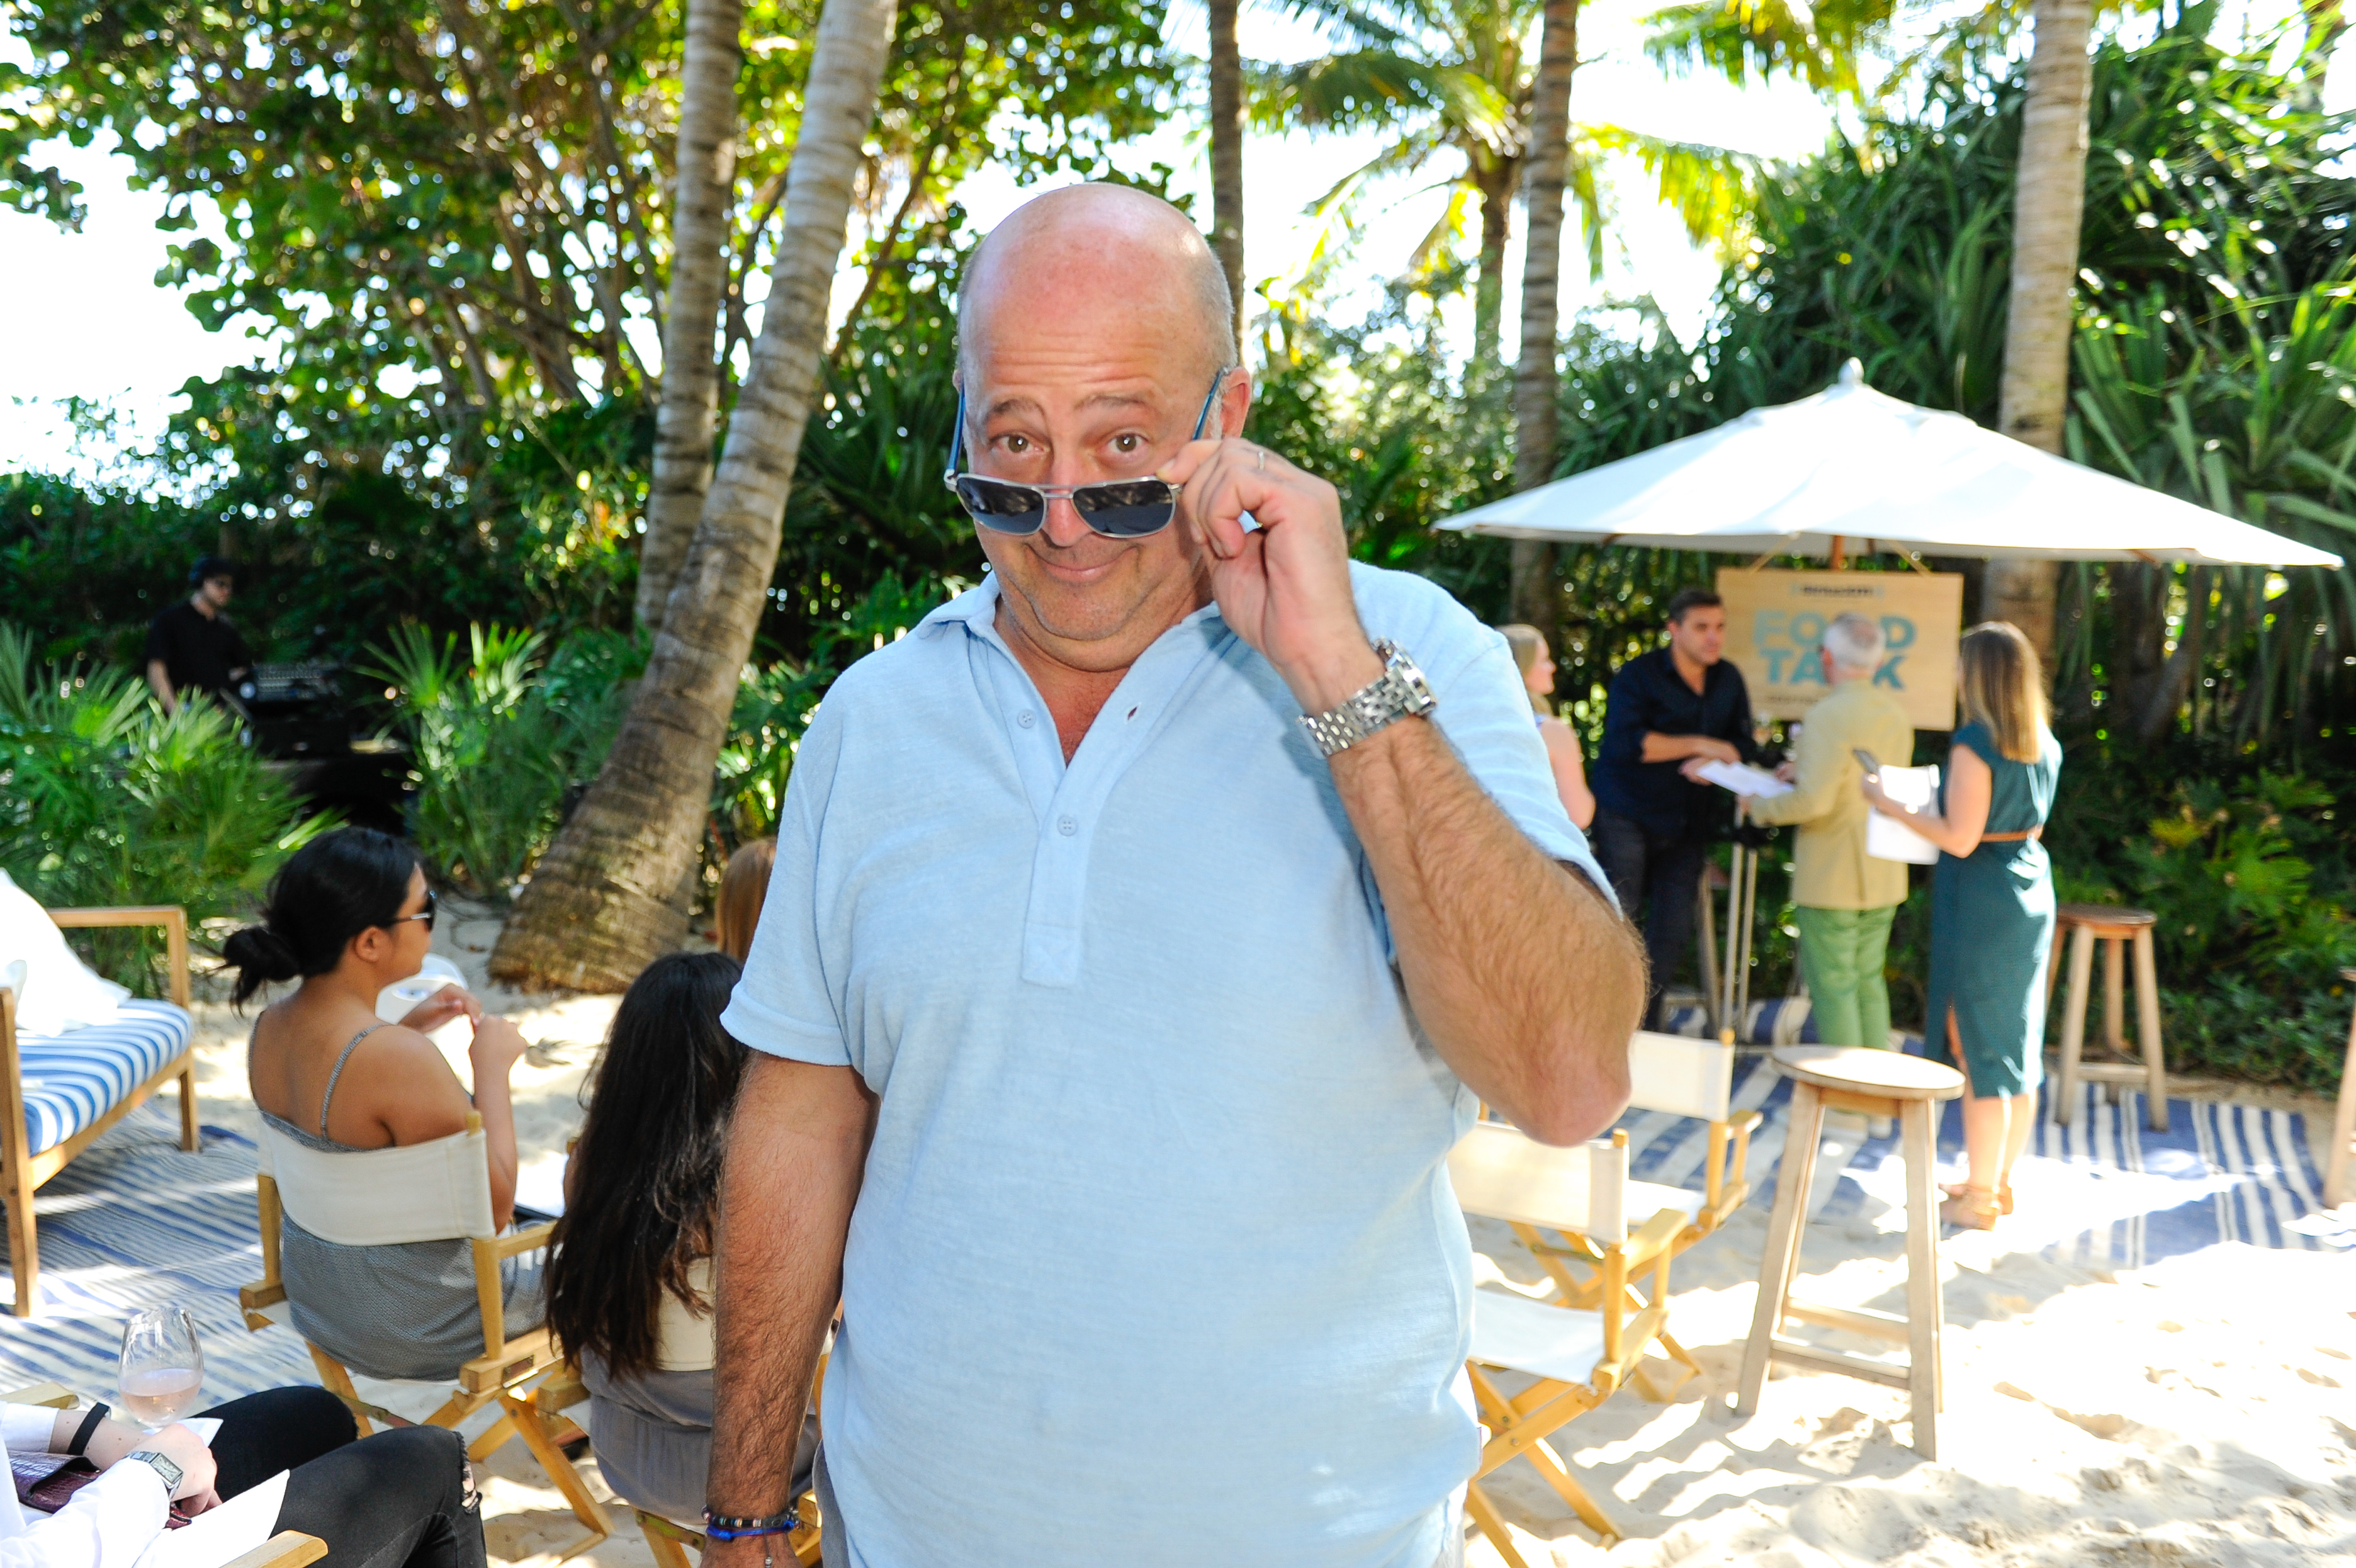 Andrew Zimmern on February 24, 2017 in Miami, Florida.